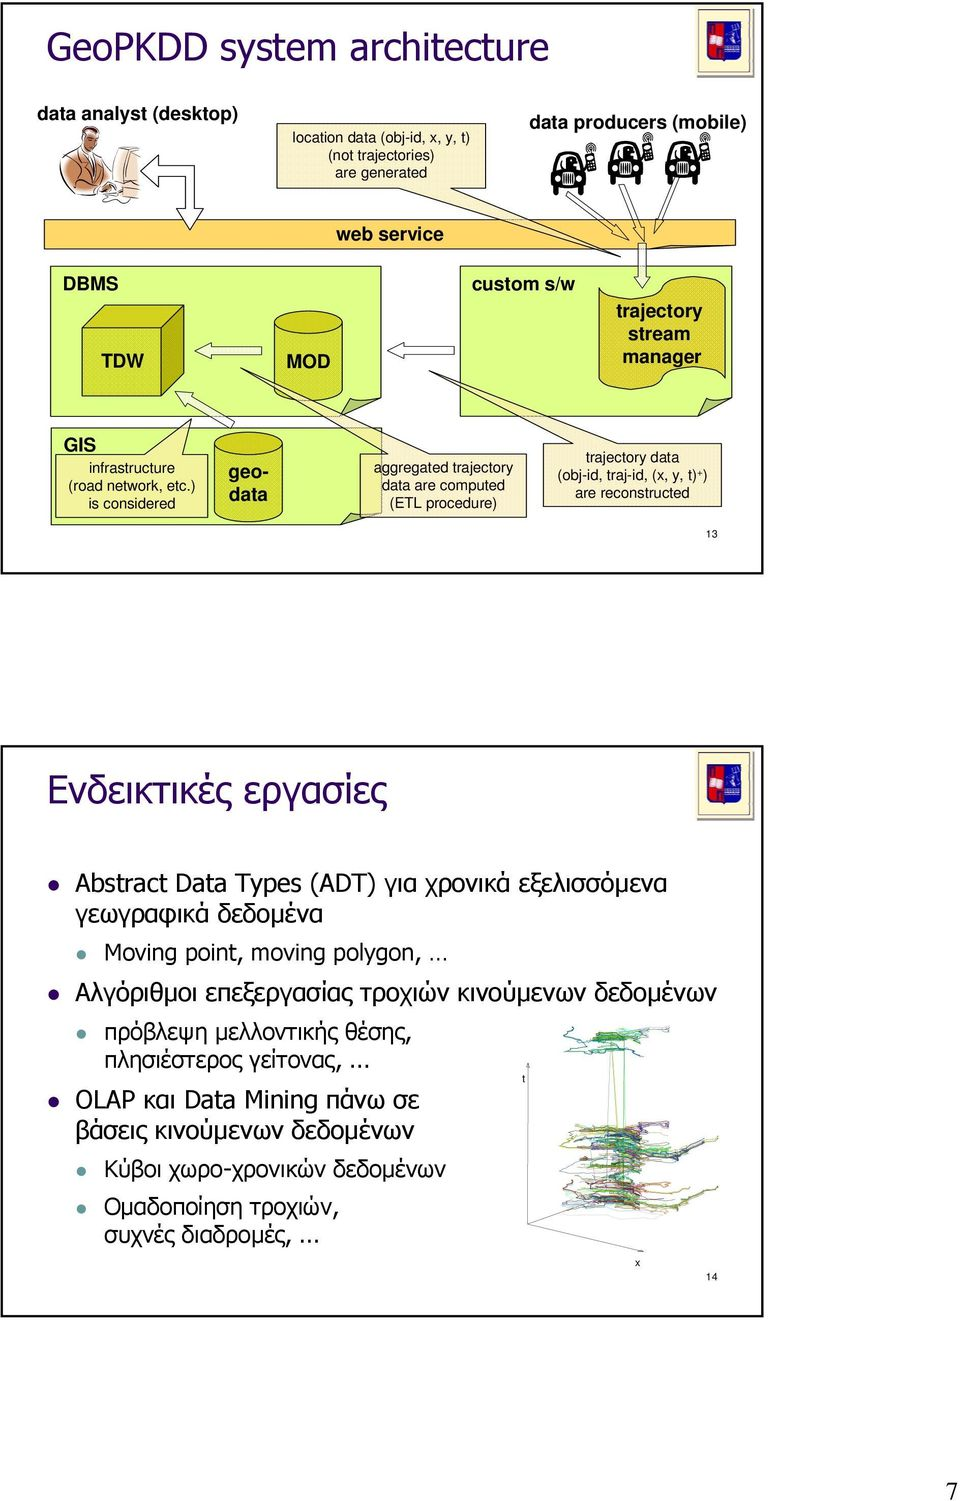 ) is considered geodata aggregated trajectory data are computed (ETL procedure) trajectory data (obj-id, traj-id, (x, y, t) + ) are reconstructed 13 Ενδεικτικές εργασίες Abstract Data